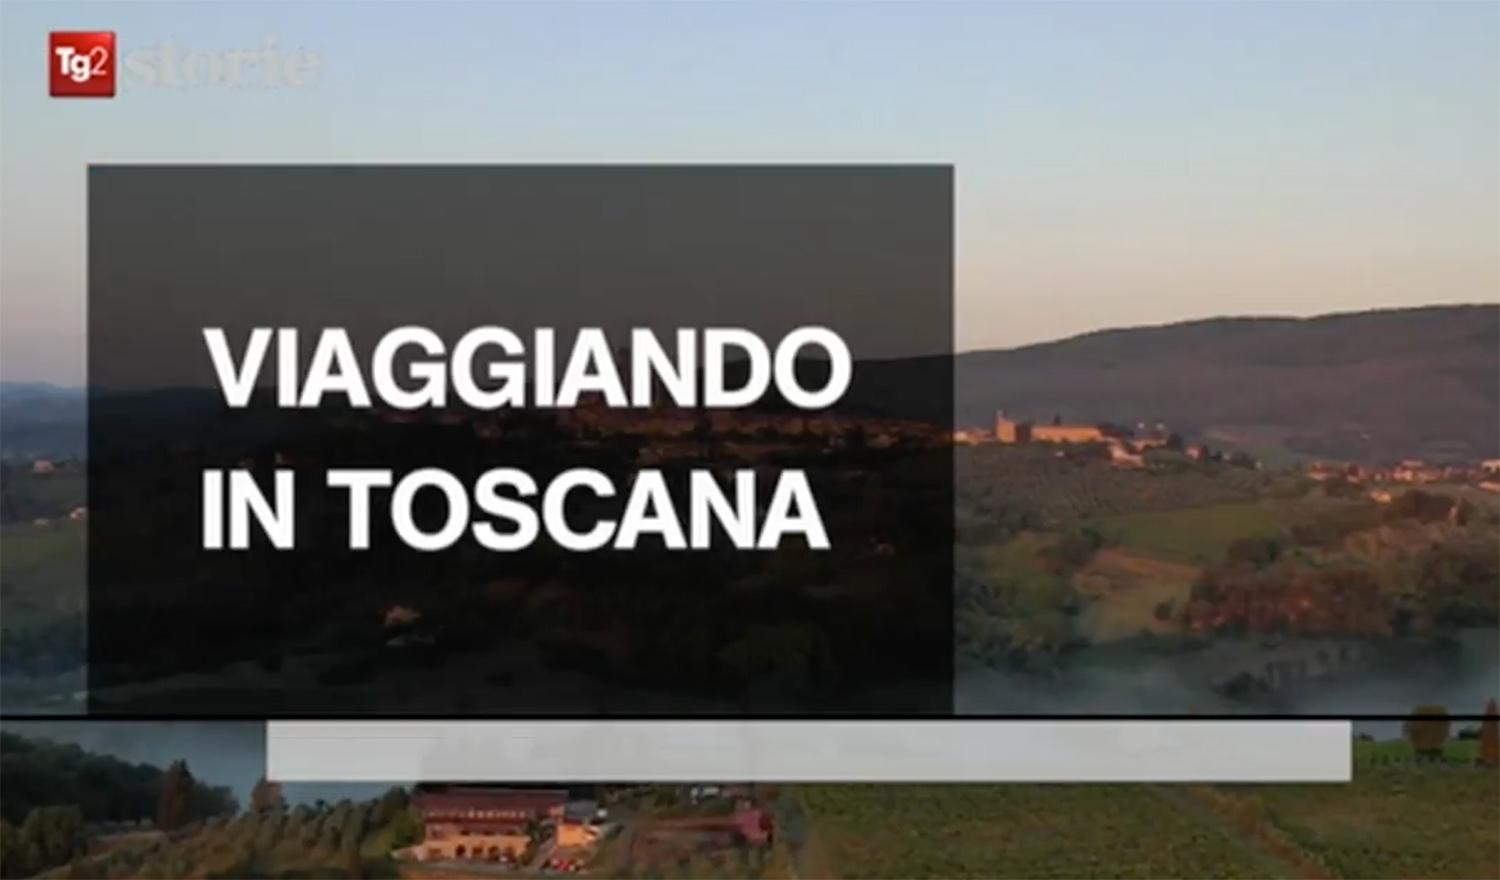 discovering tuscany